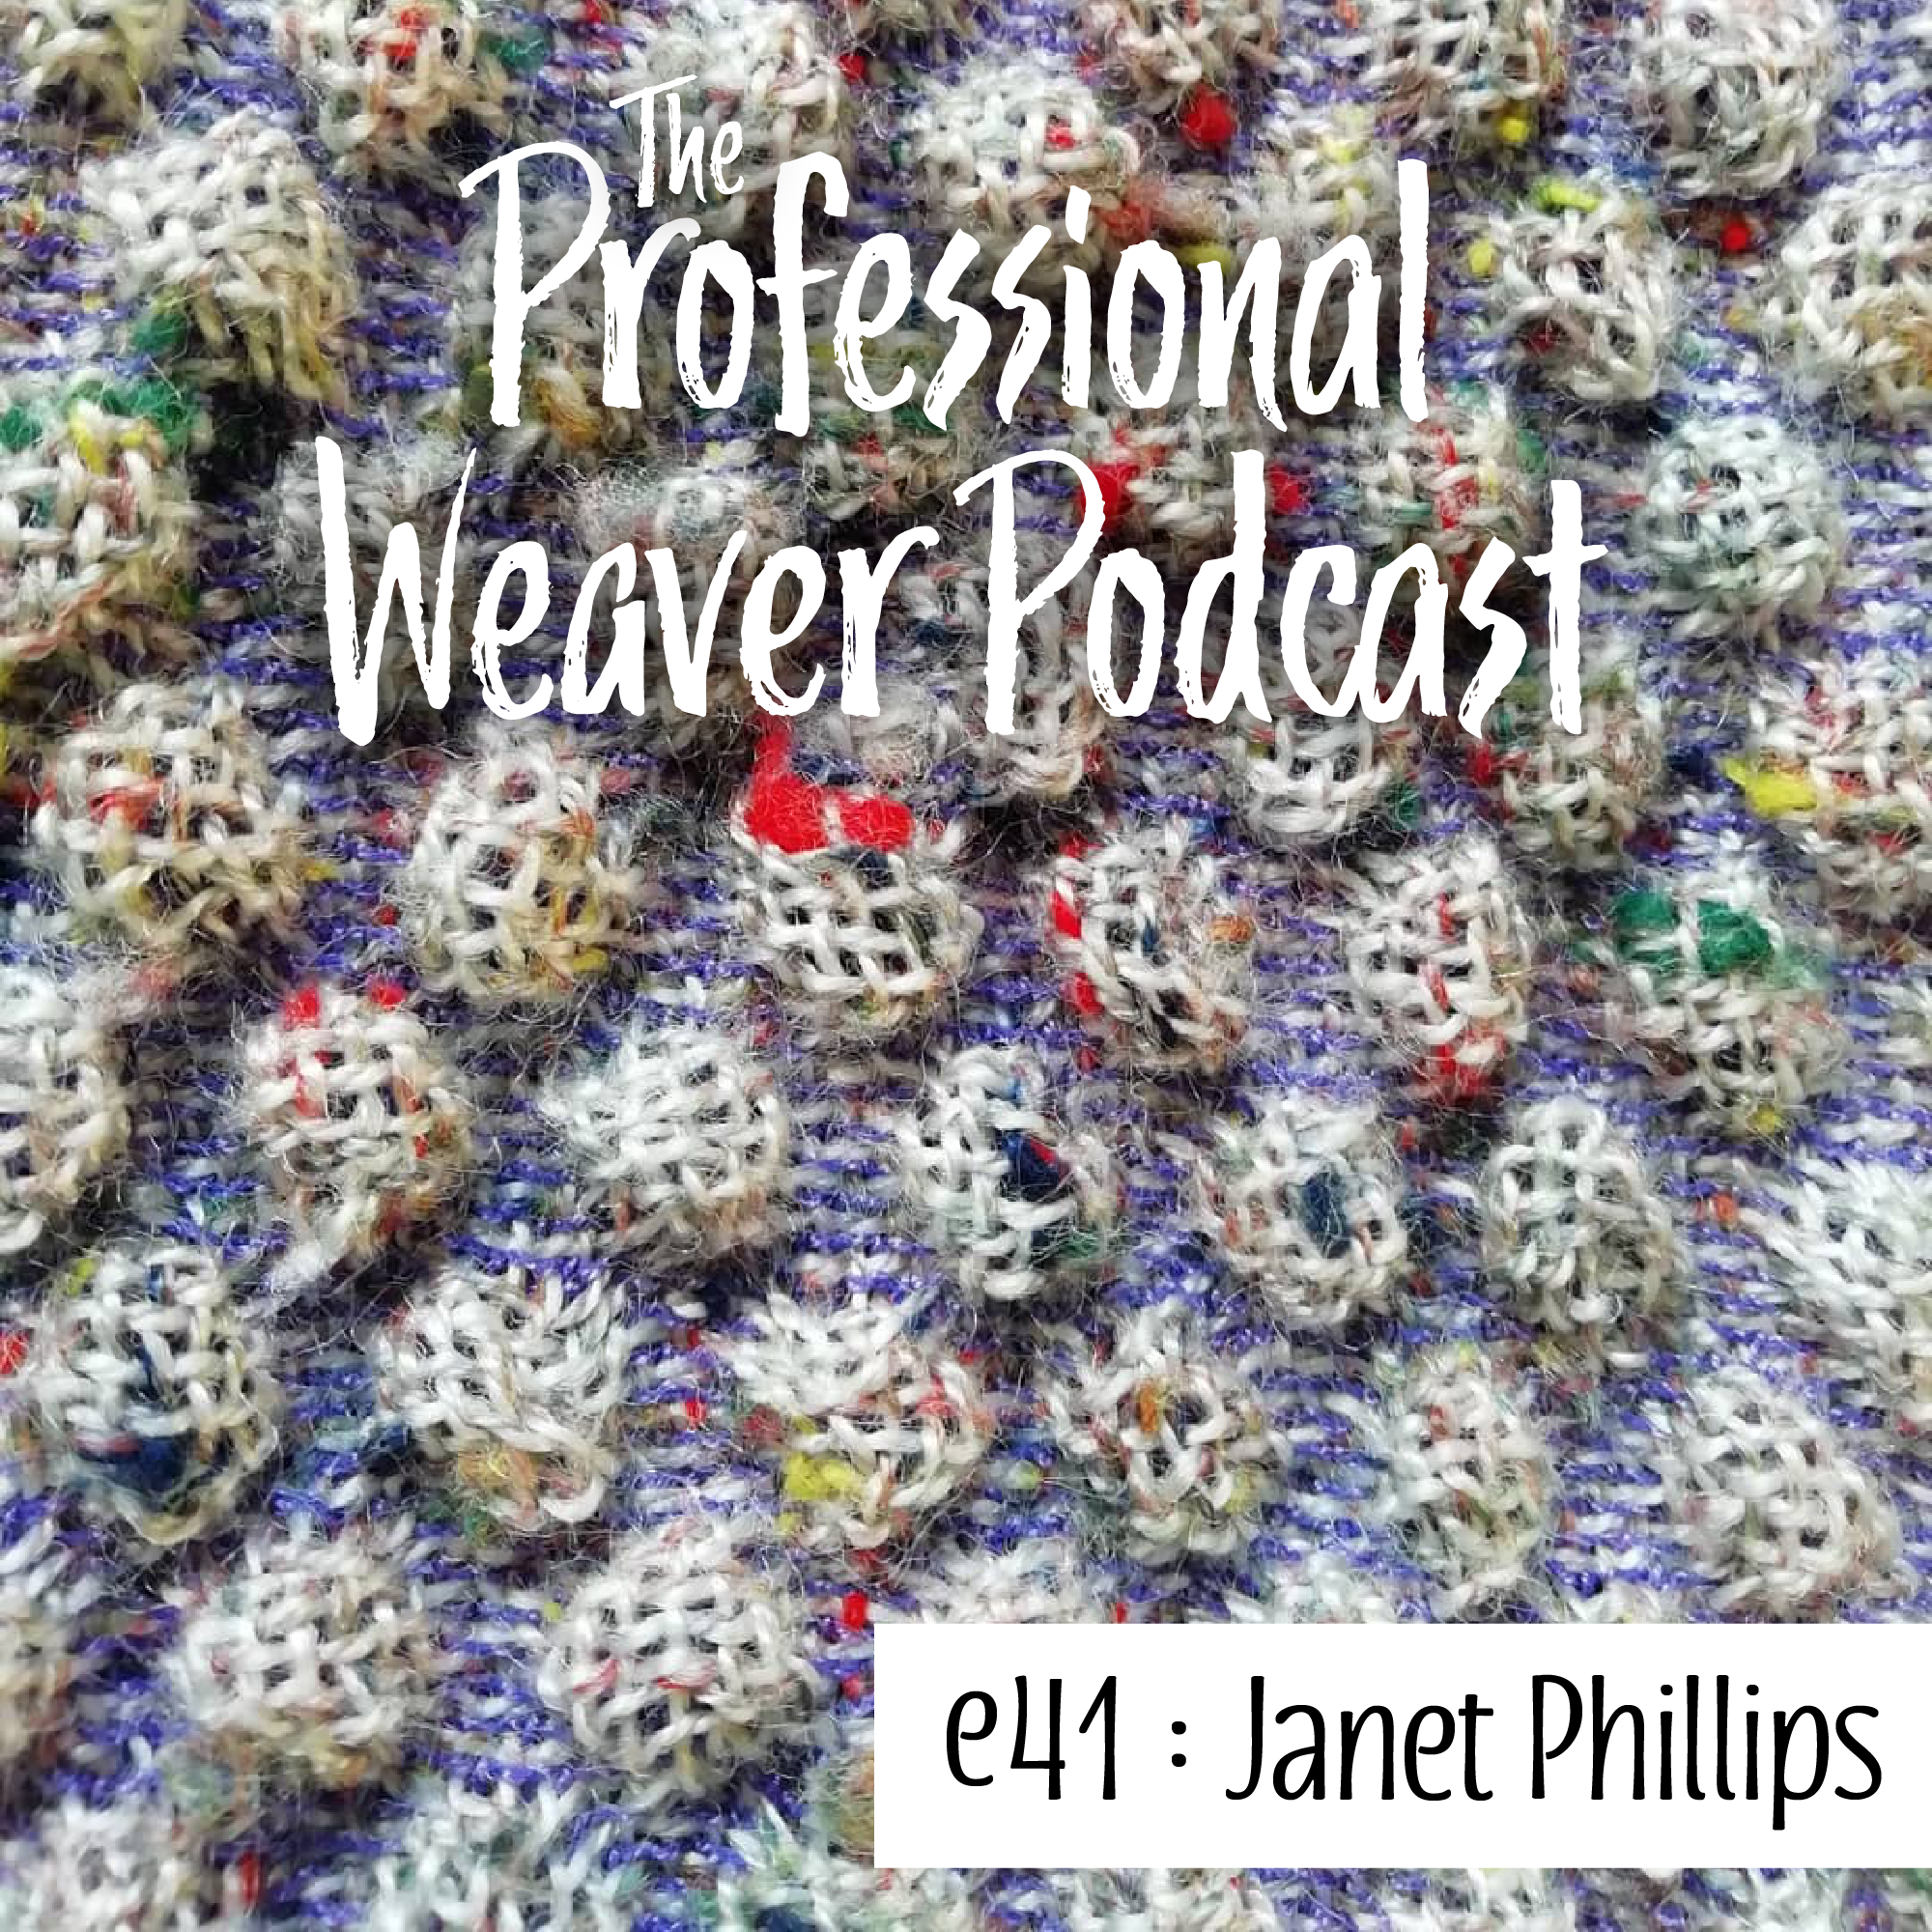 Episode 41 : Janet Phillips